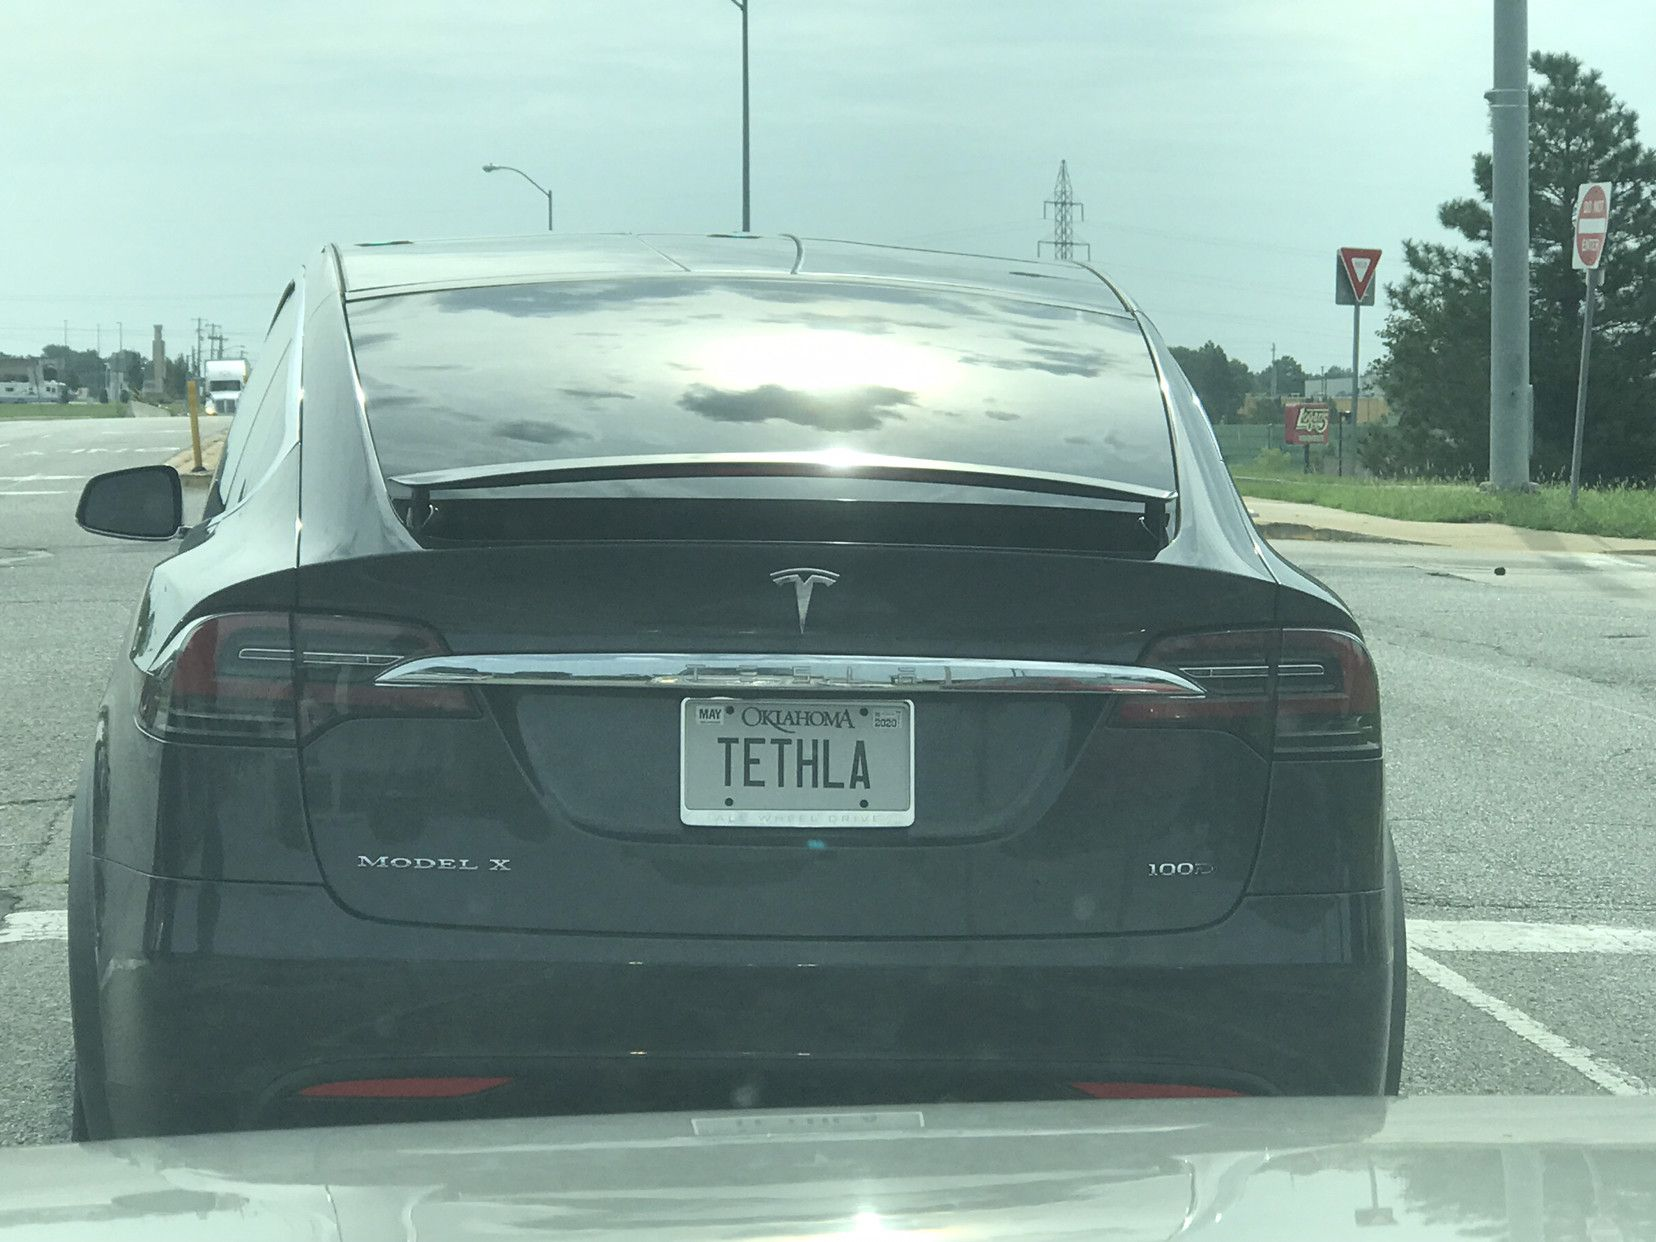 Mike Tyson recently bought a Tesla